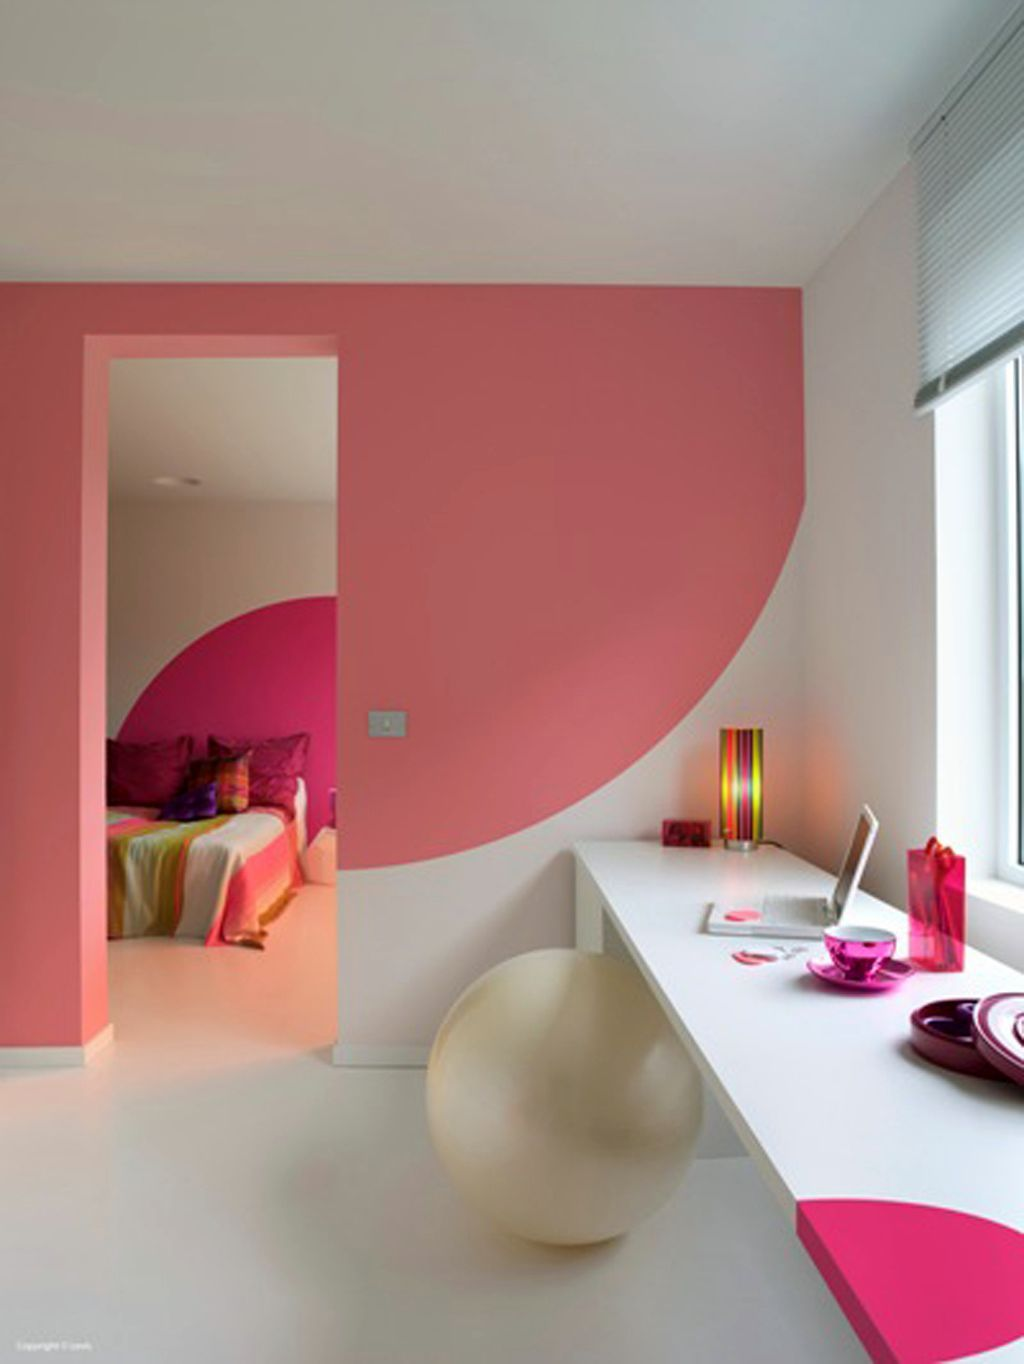 Bedroom paint designs pink - Image Cool Bedroom Paint Designs Half Circle Pink Cool Wall Painting Designs